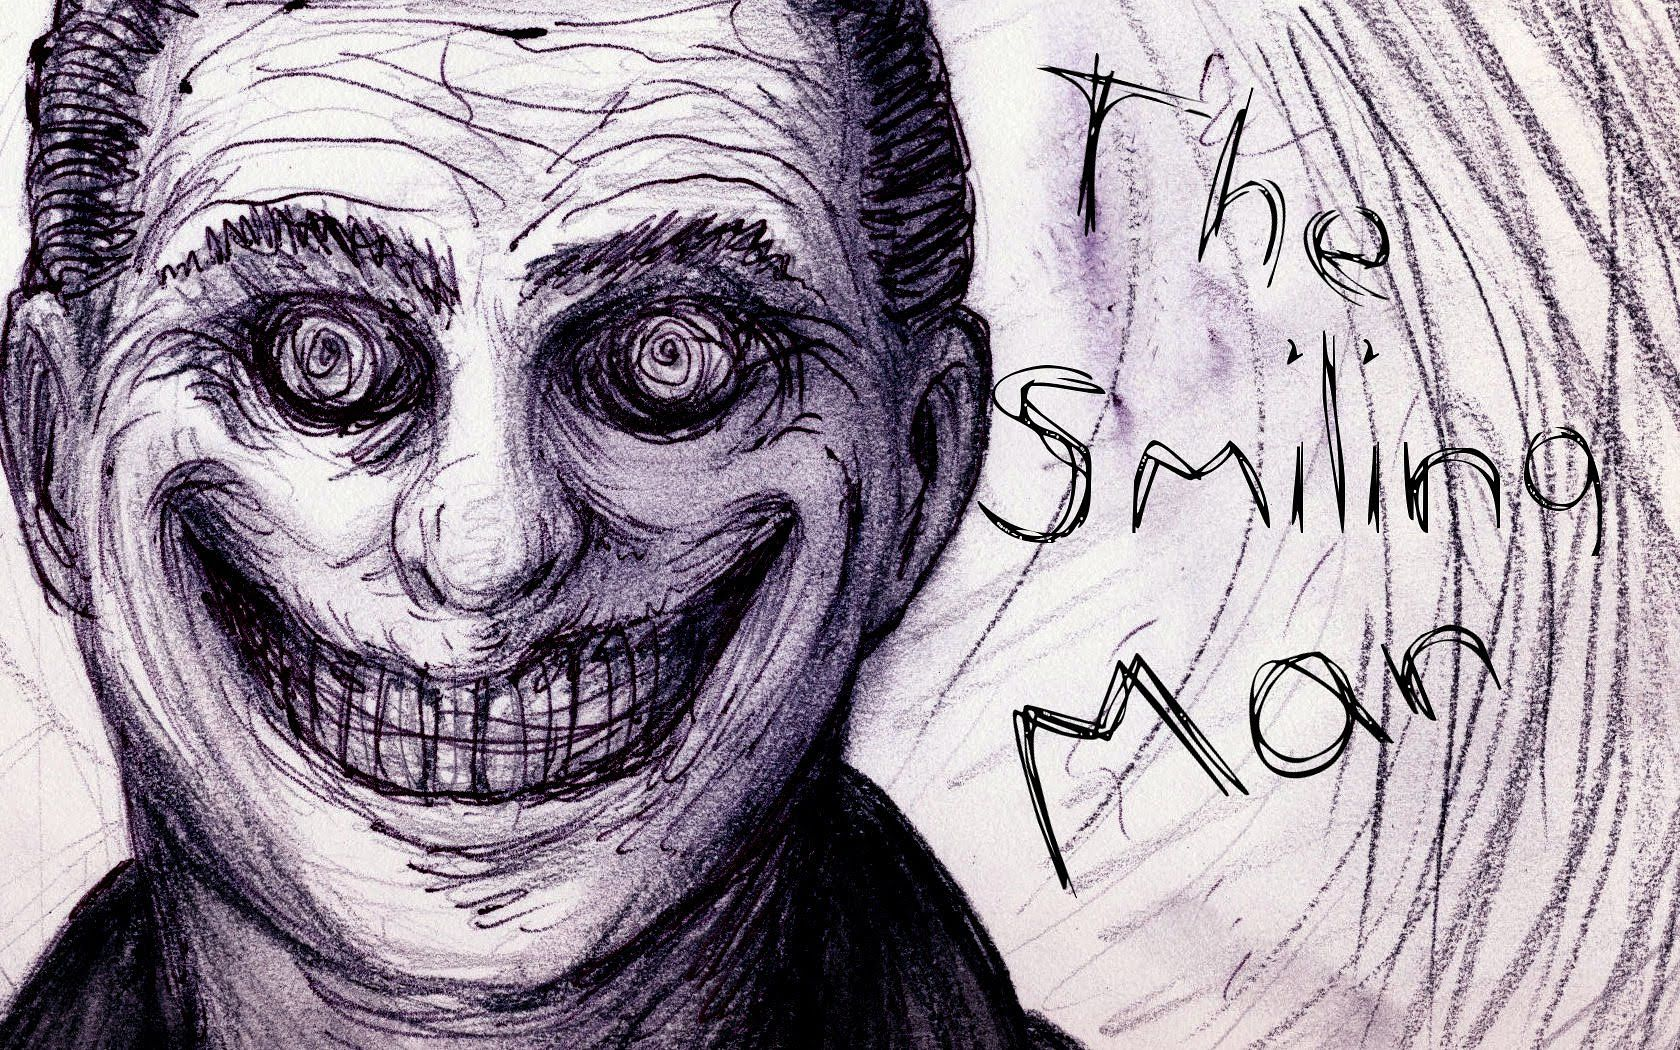 the-smiling-man-from-page-to-film-527453